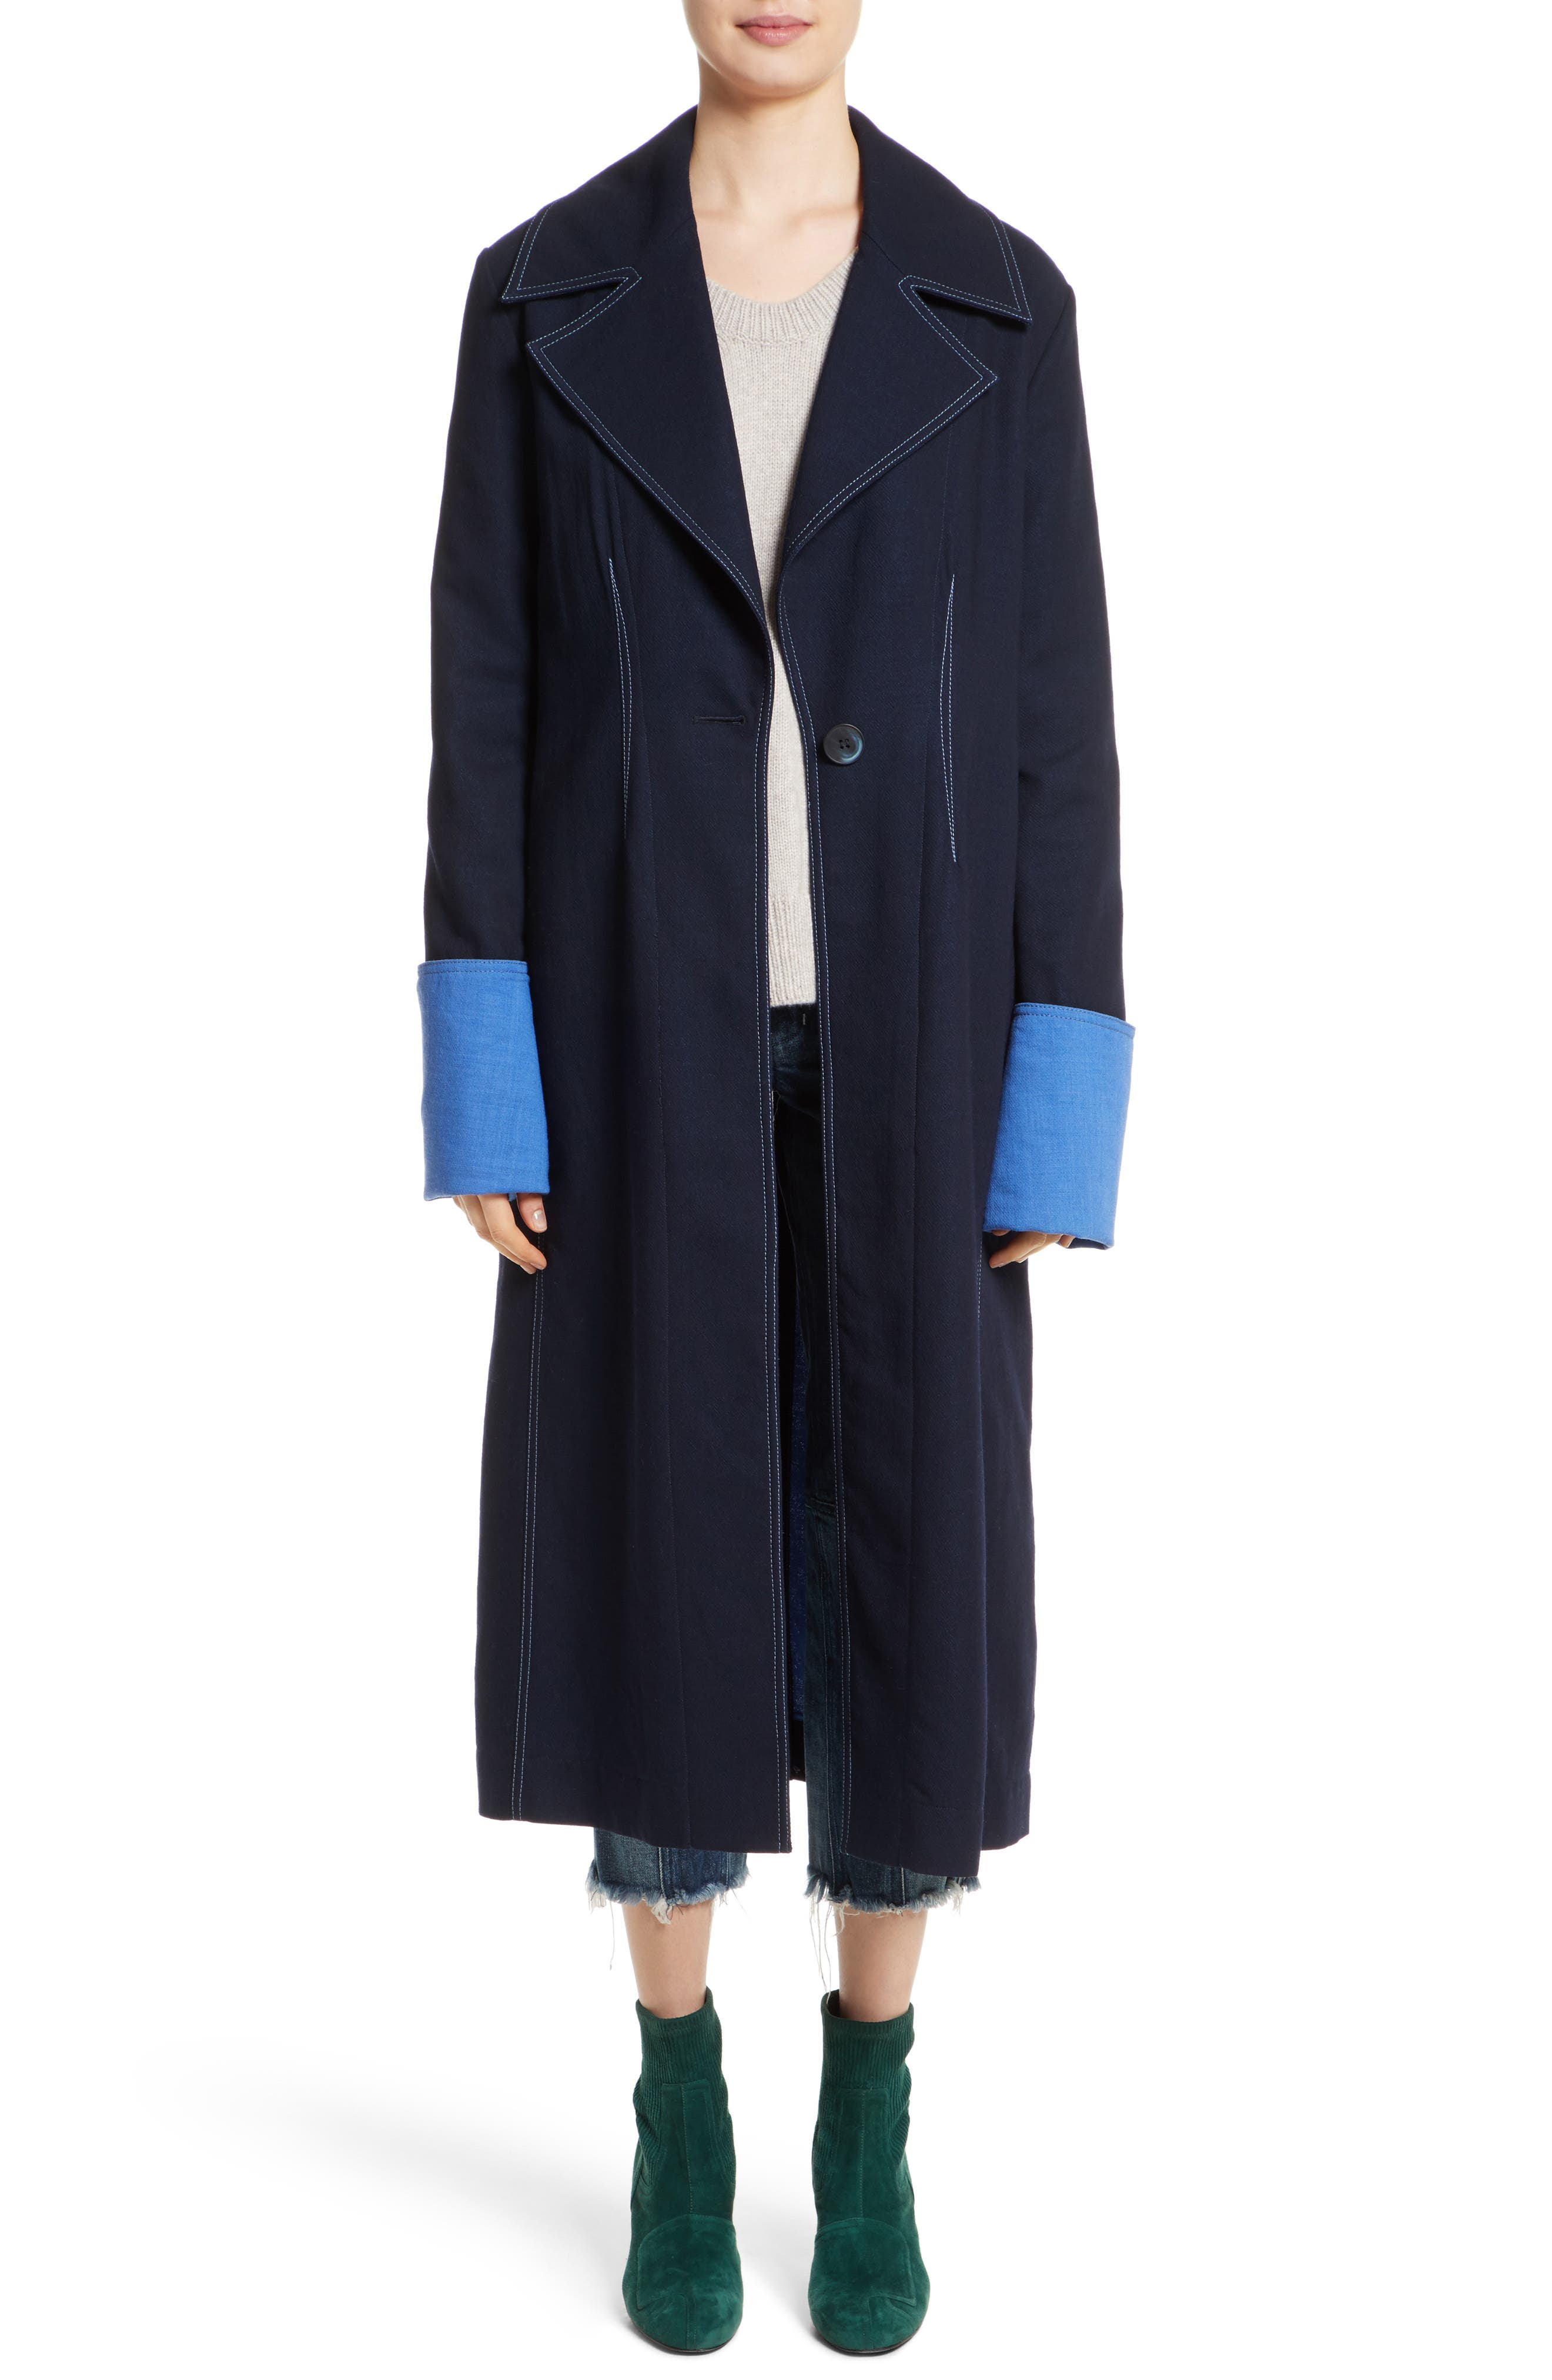 Colovos Contrast Cuff Wool Coat - COLOVOS